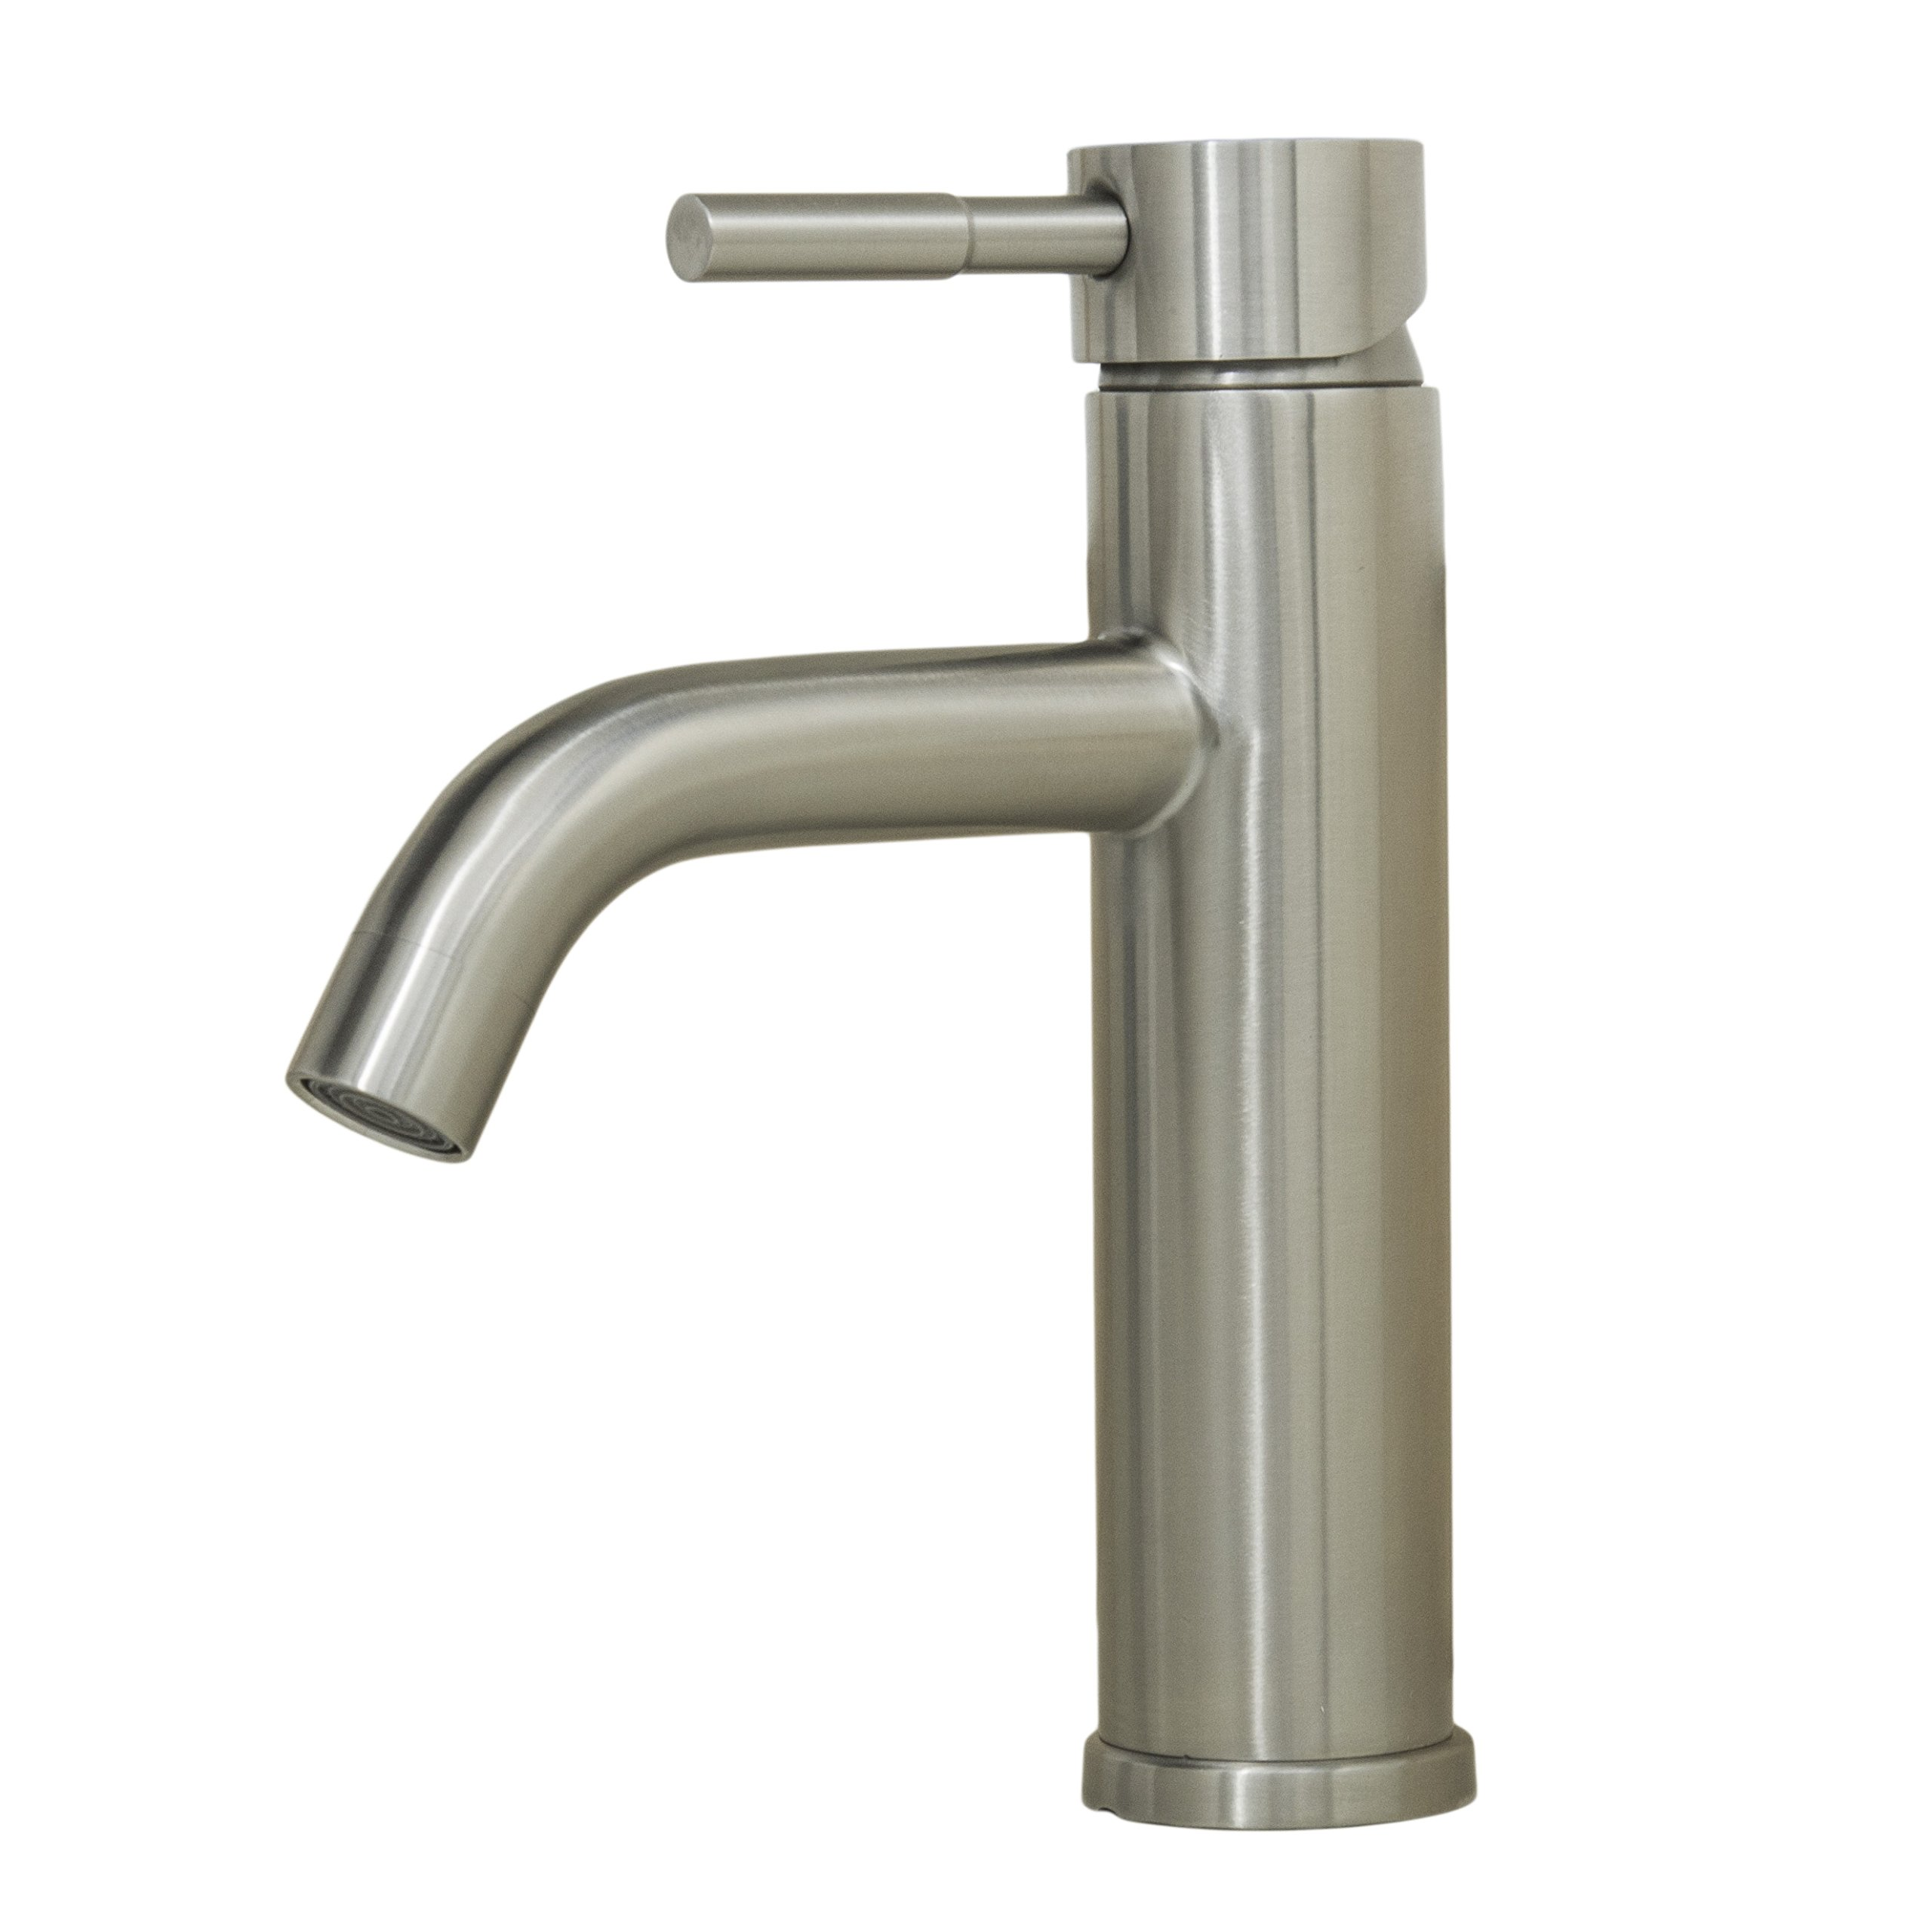 Wells Sinkware 308002 Alonza Renaissance Collection Single-Handle Lavatory Faucet, 8'', Stainless Steel